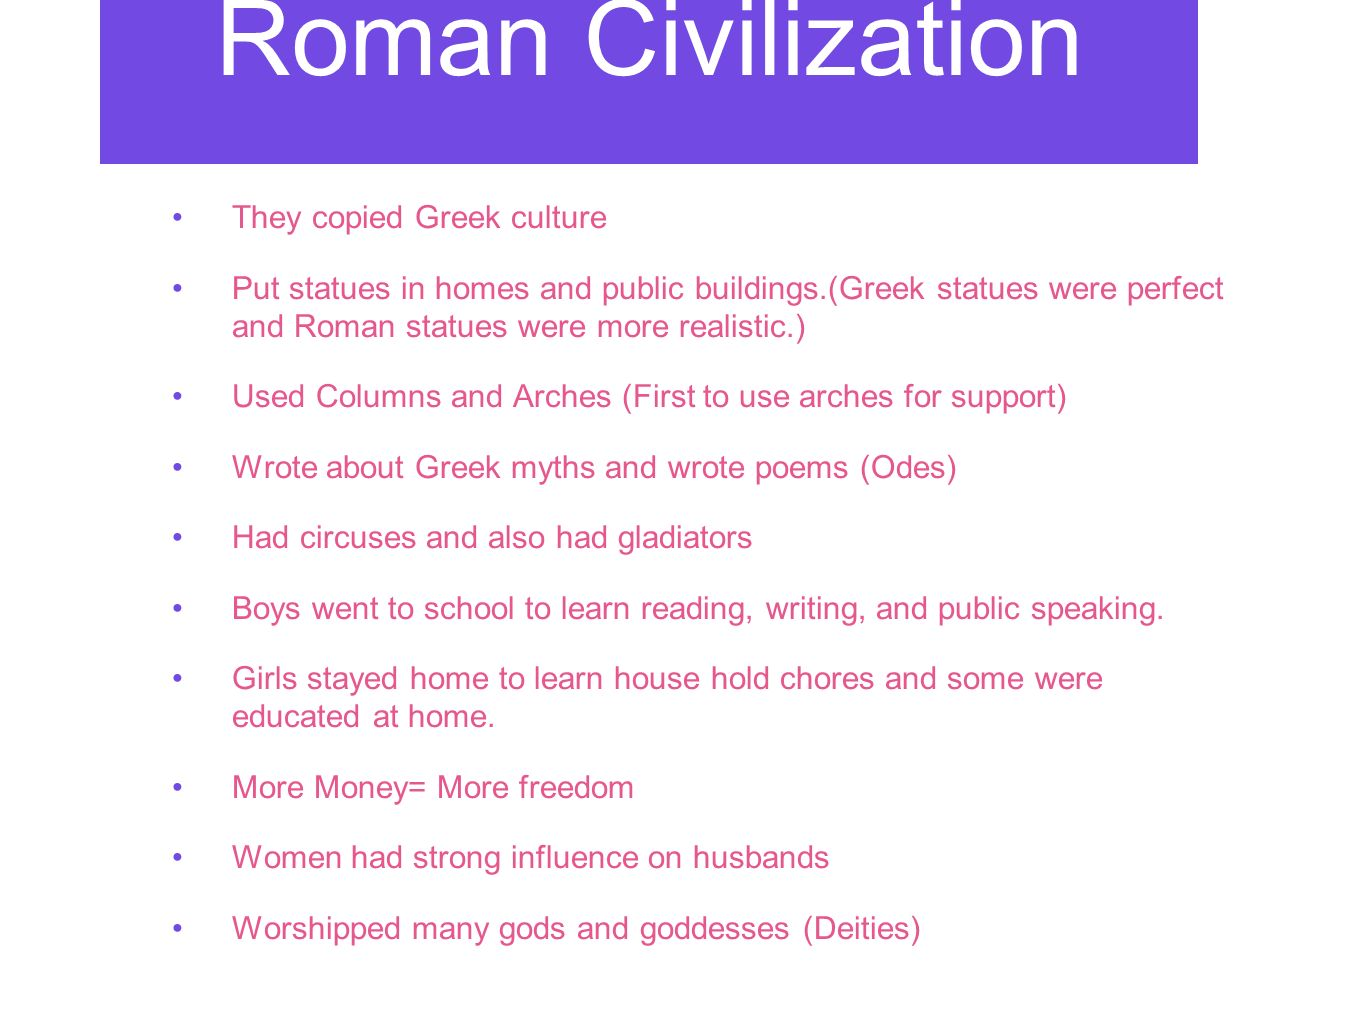 Roman Civilization They copied Greek culture Put statues in homes and public buildings.(Greek statues were perfect and Roman statues were more realistic.) Used Columns and Arches (First to use arches for support) Wrote about Greek myths and wrote poems (Odes) Had circuses and also had gladiators Boys went to school to learn reading, writing, and public speaking.